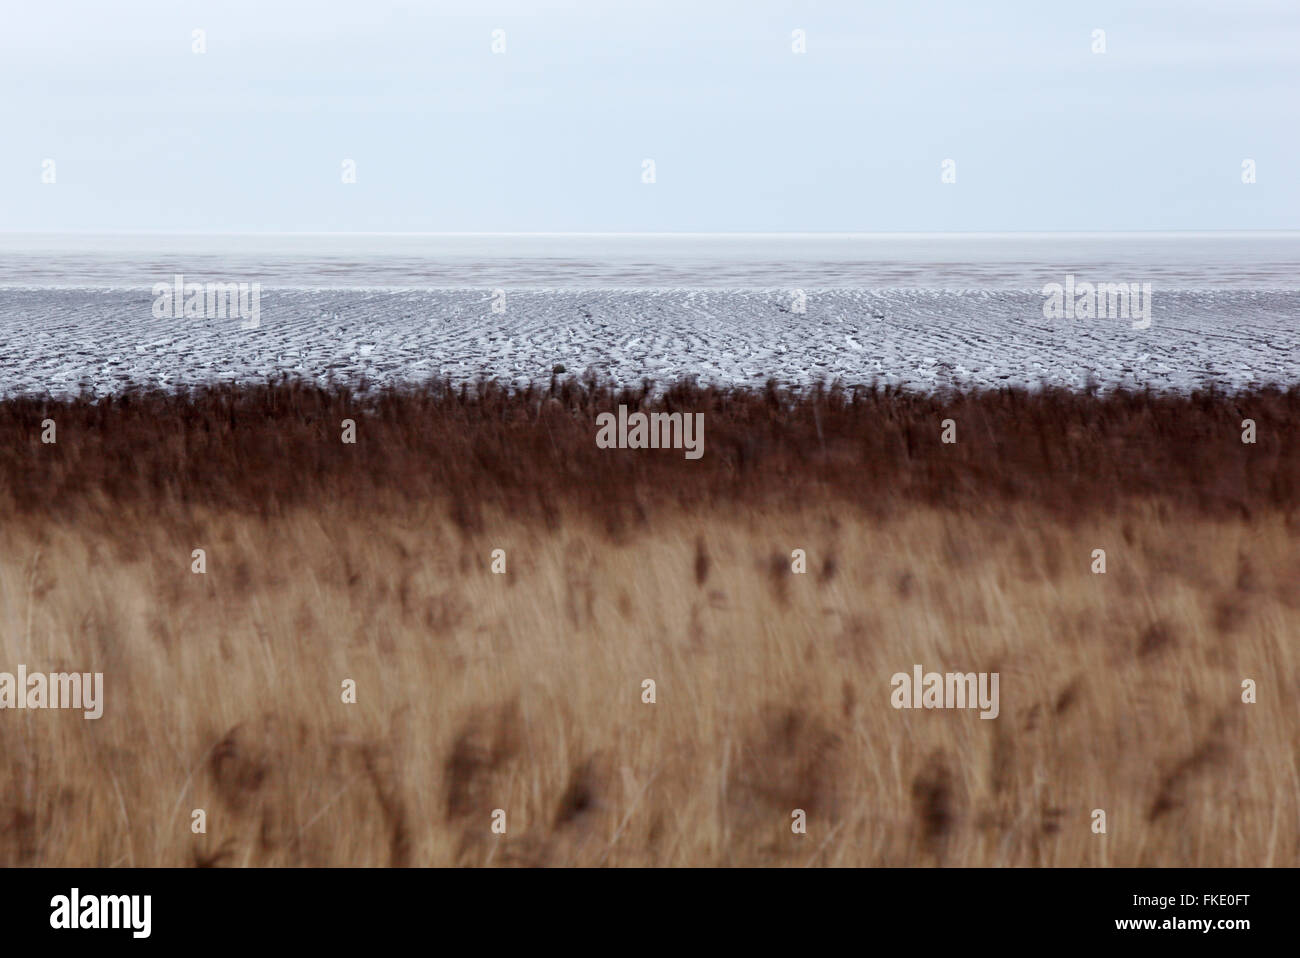 Reedbeds and mudflats at Steart Marshes. Somerset. UK. - Stock Image